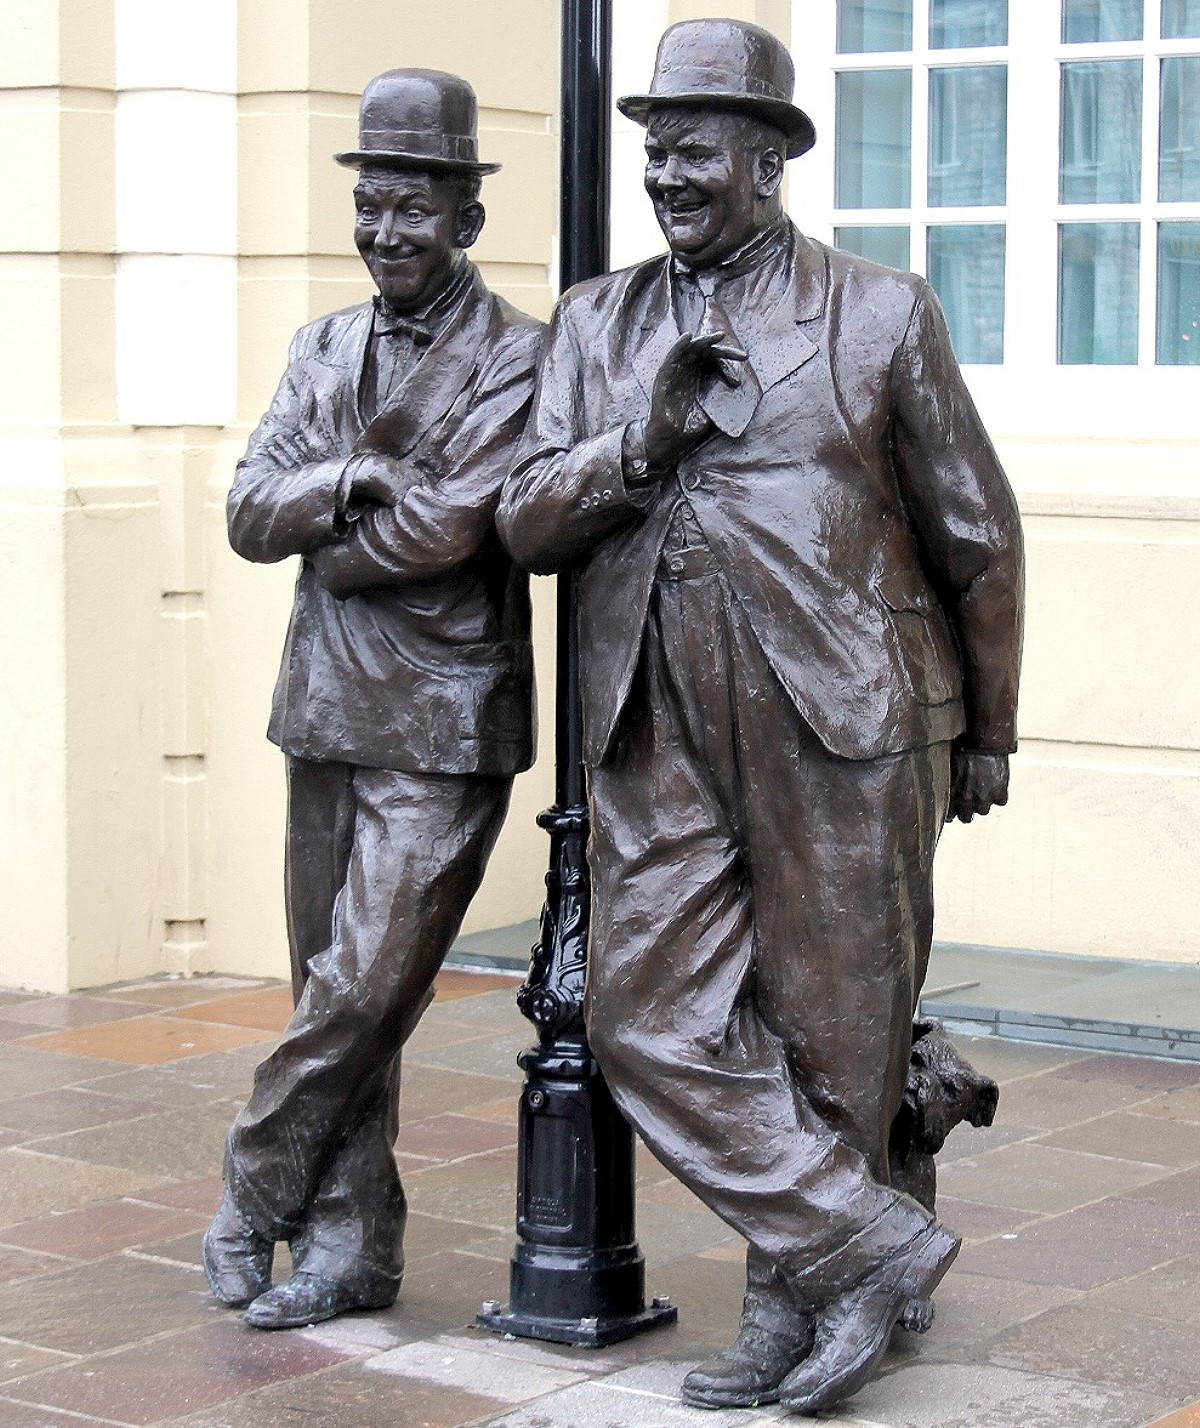 https://upload.wikimedia.org/wikipedia/commons/5/55/Statues_of_Stan_Laurel_and_Oliver_Hardy.jpg